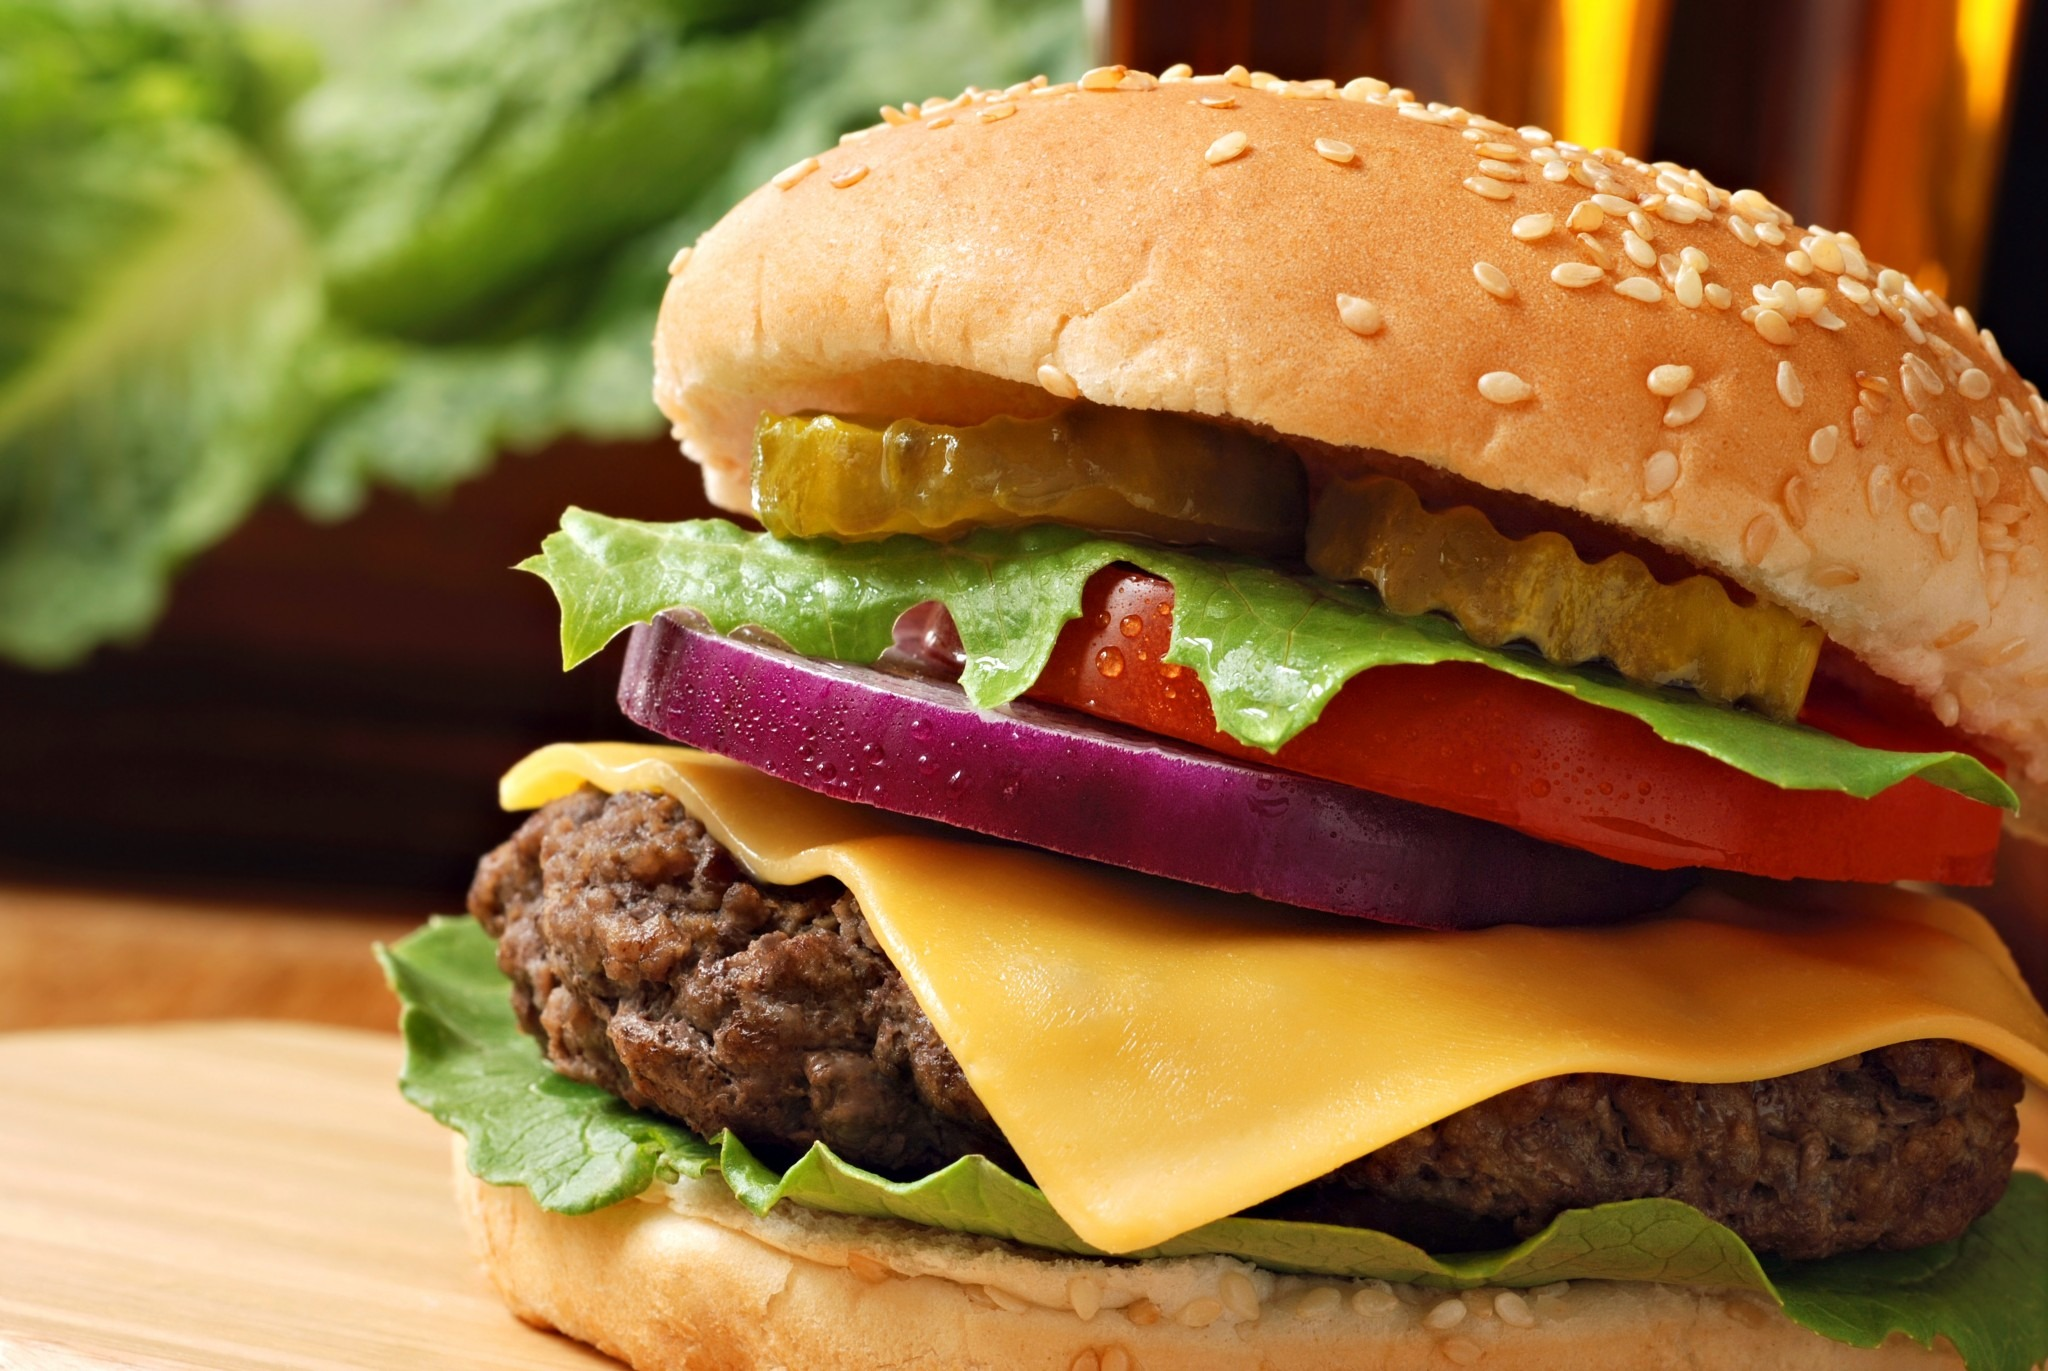 Weekly Economic News Roundup and NAFTA burger and trade with Canada